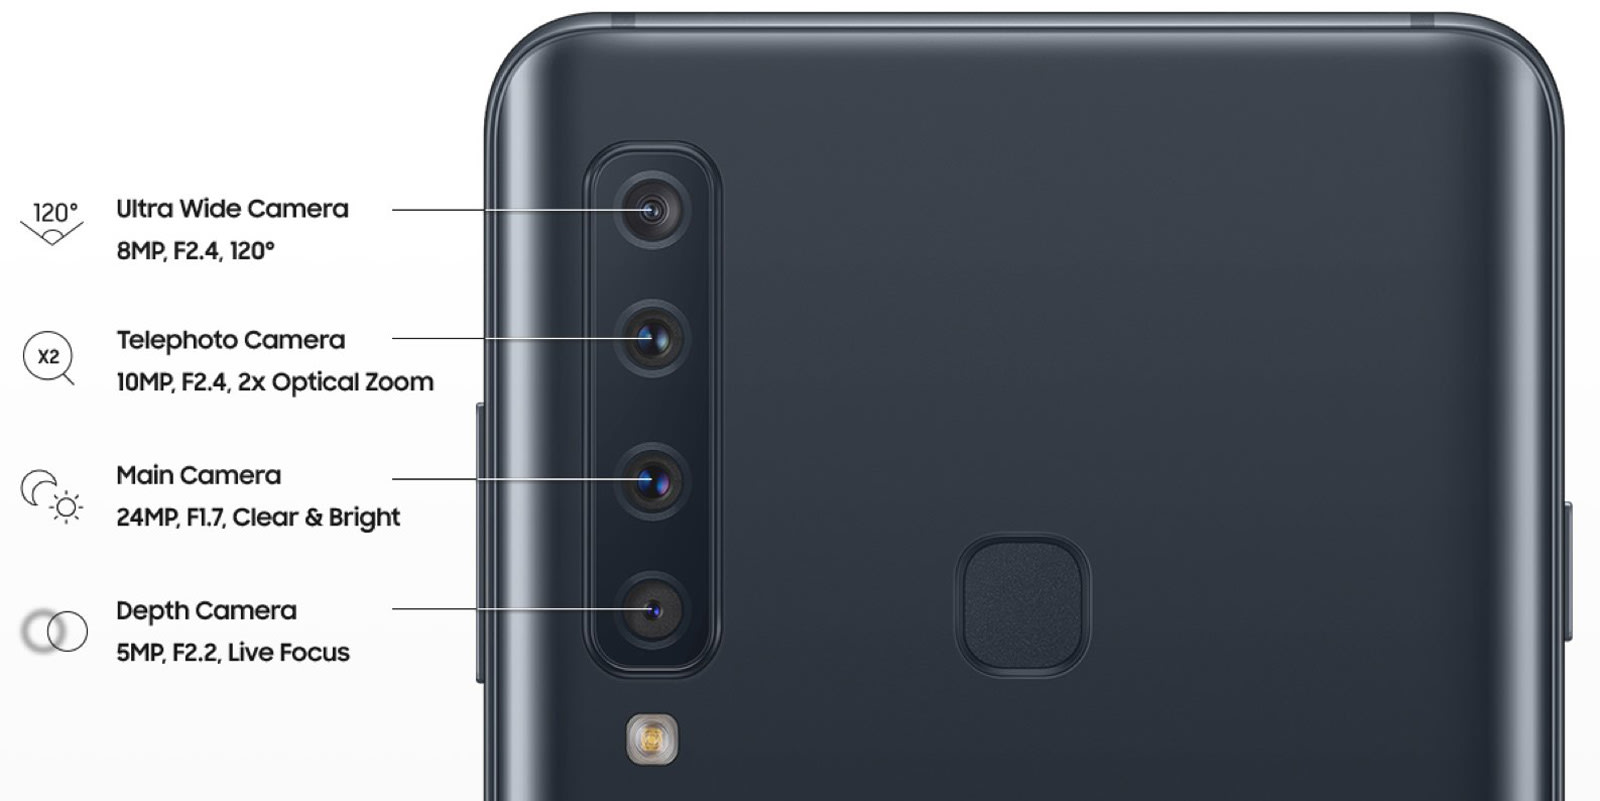 b9c3ffdde11 Samsung thinks you want a phone with four rear cameras